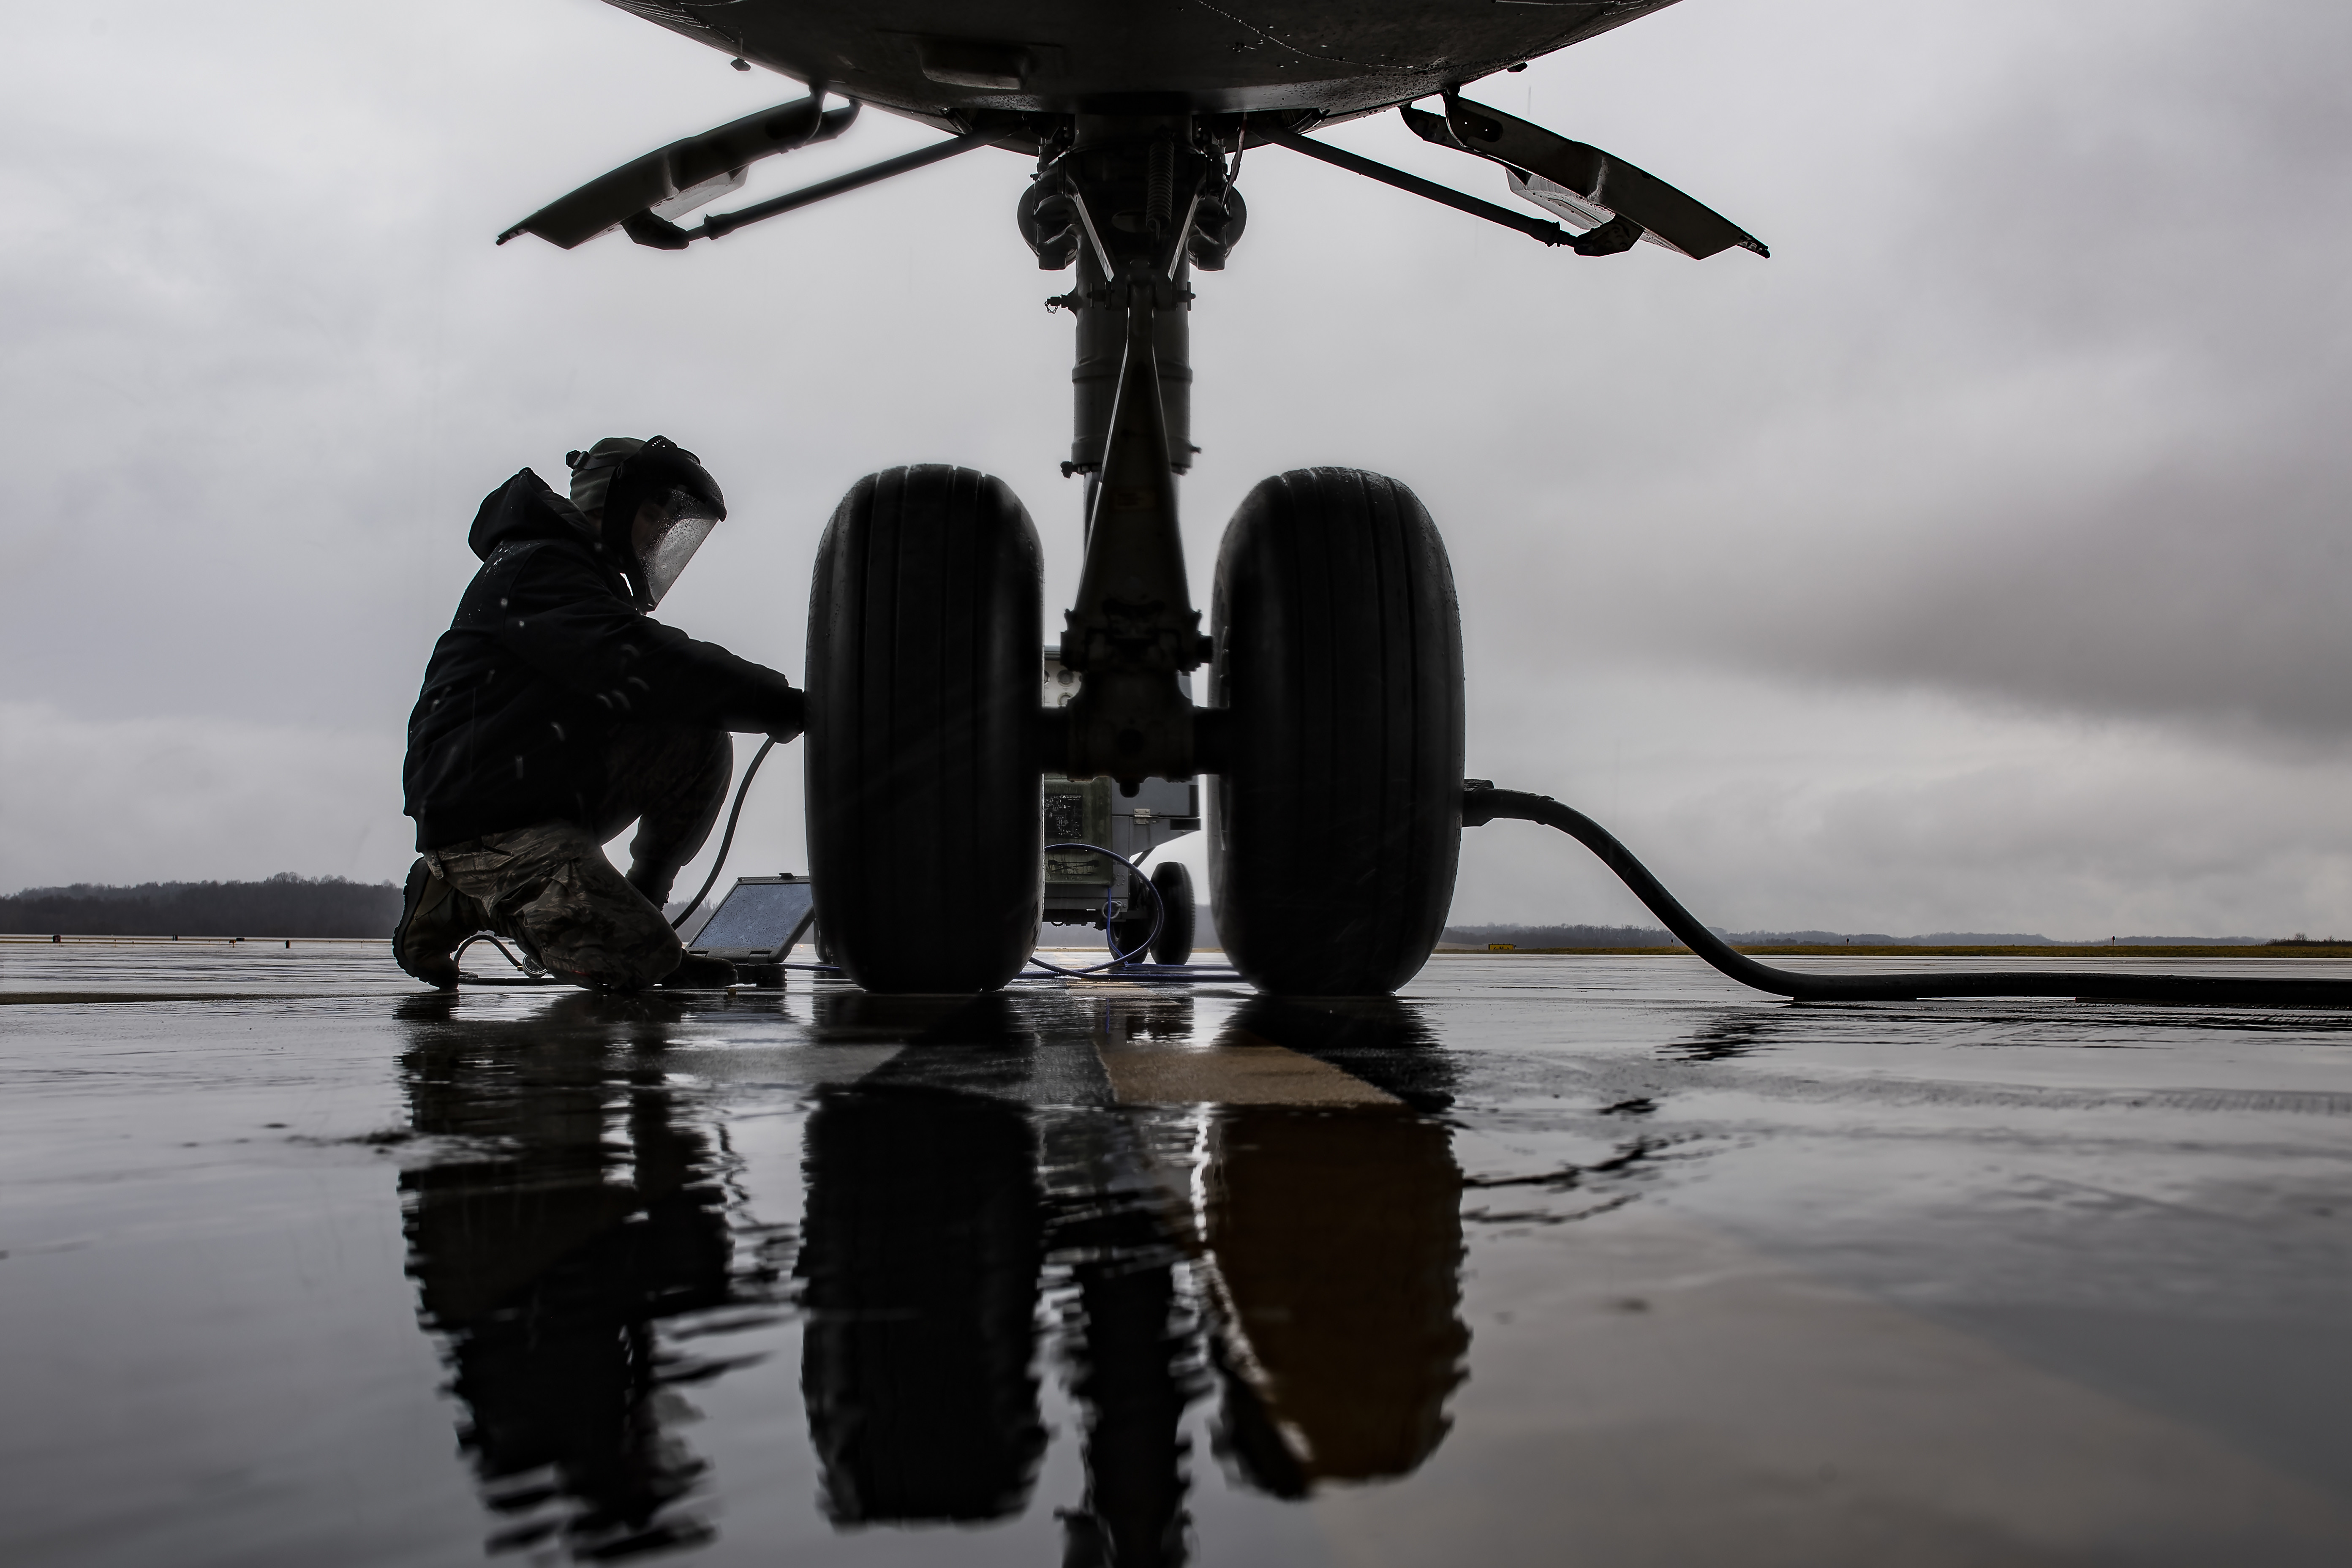 Senior Airman Zachary Anderson, 911th Aircraft Maintenance Squadron crew chief, services a nose landing-gear tire on a C-17 Globemaster III at the Pittsburgh International Airport Air Reserve Station, Pa., Feb. 26, 2020. (Joshua J. Seybert/Air Force)